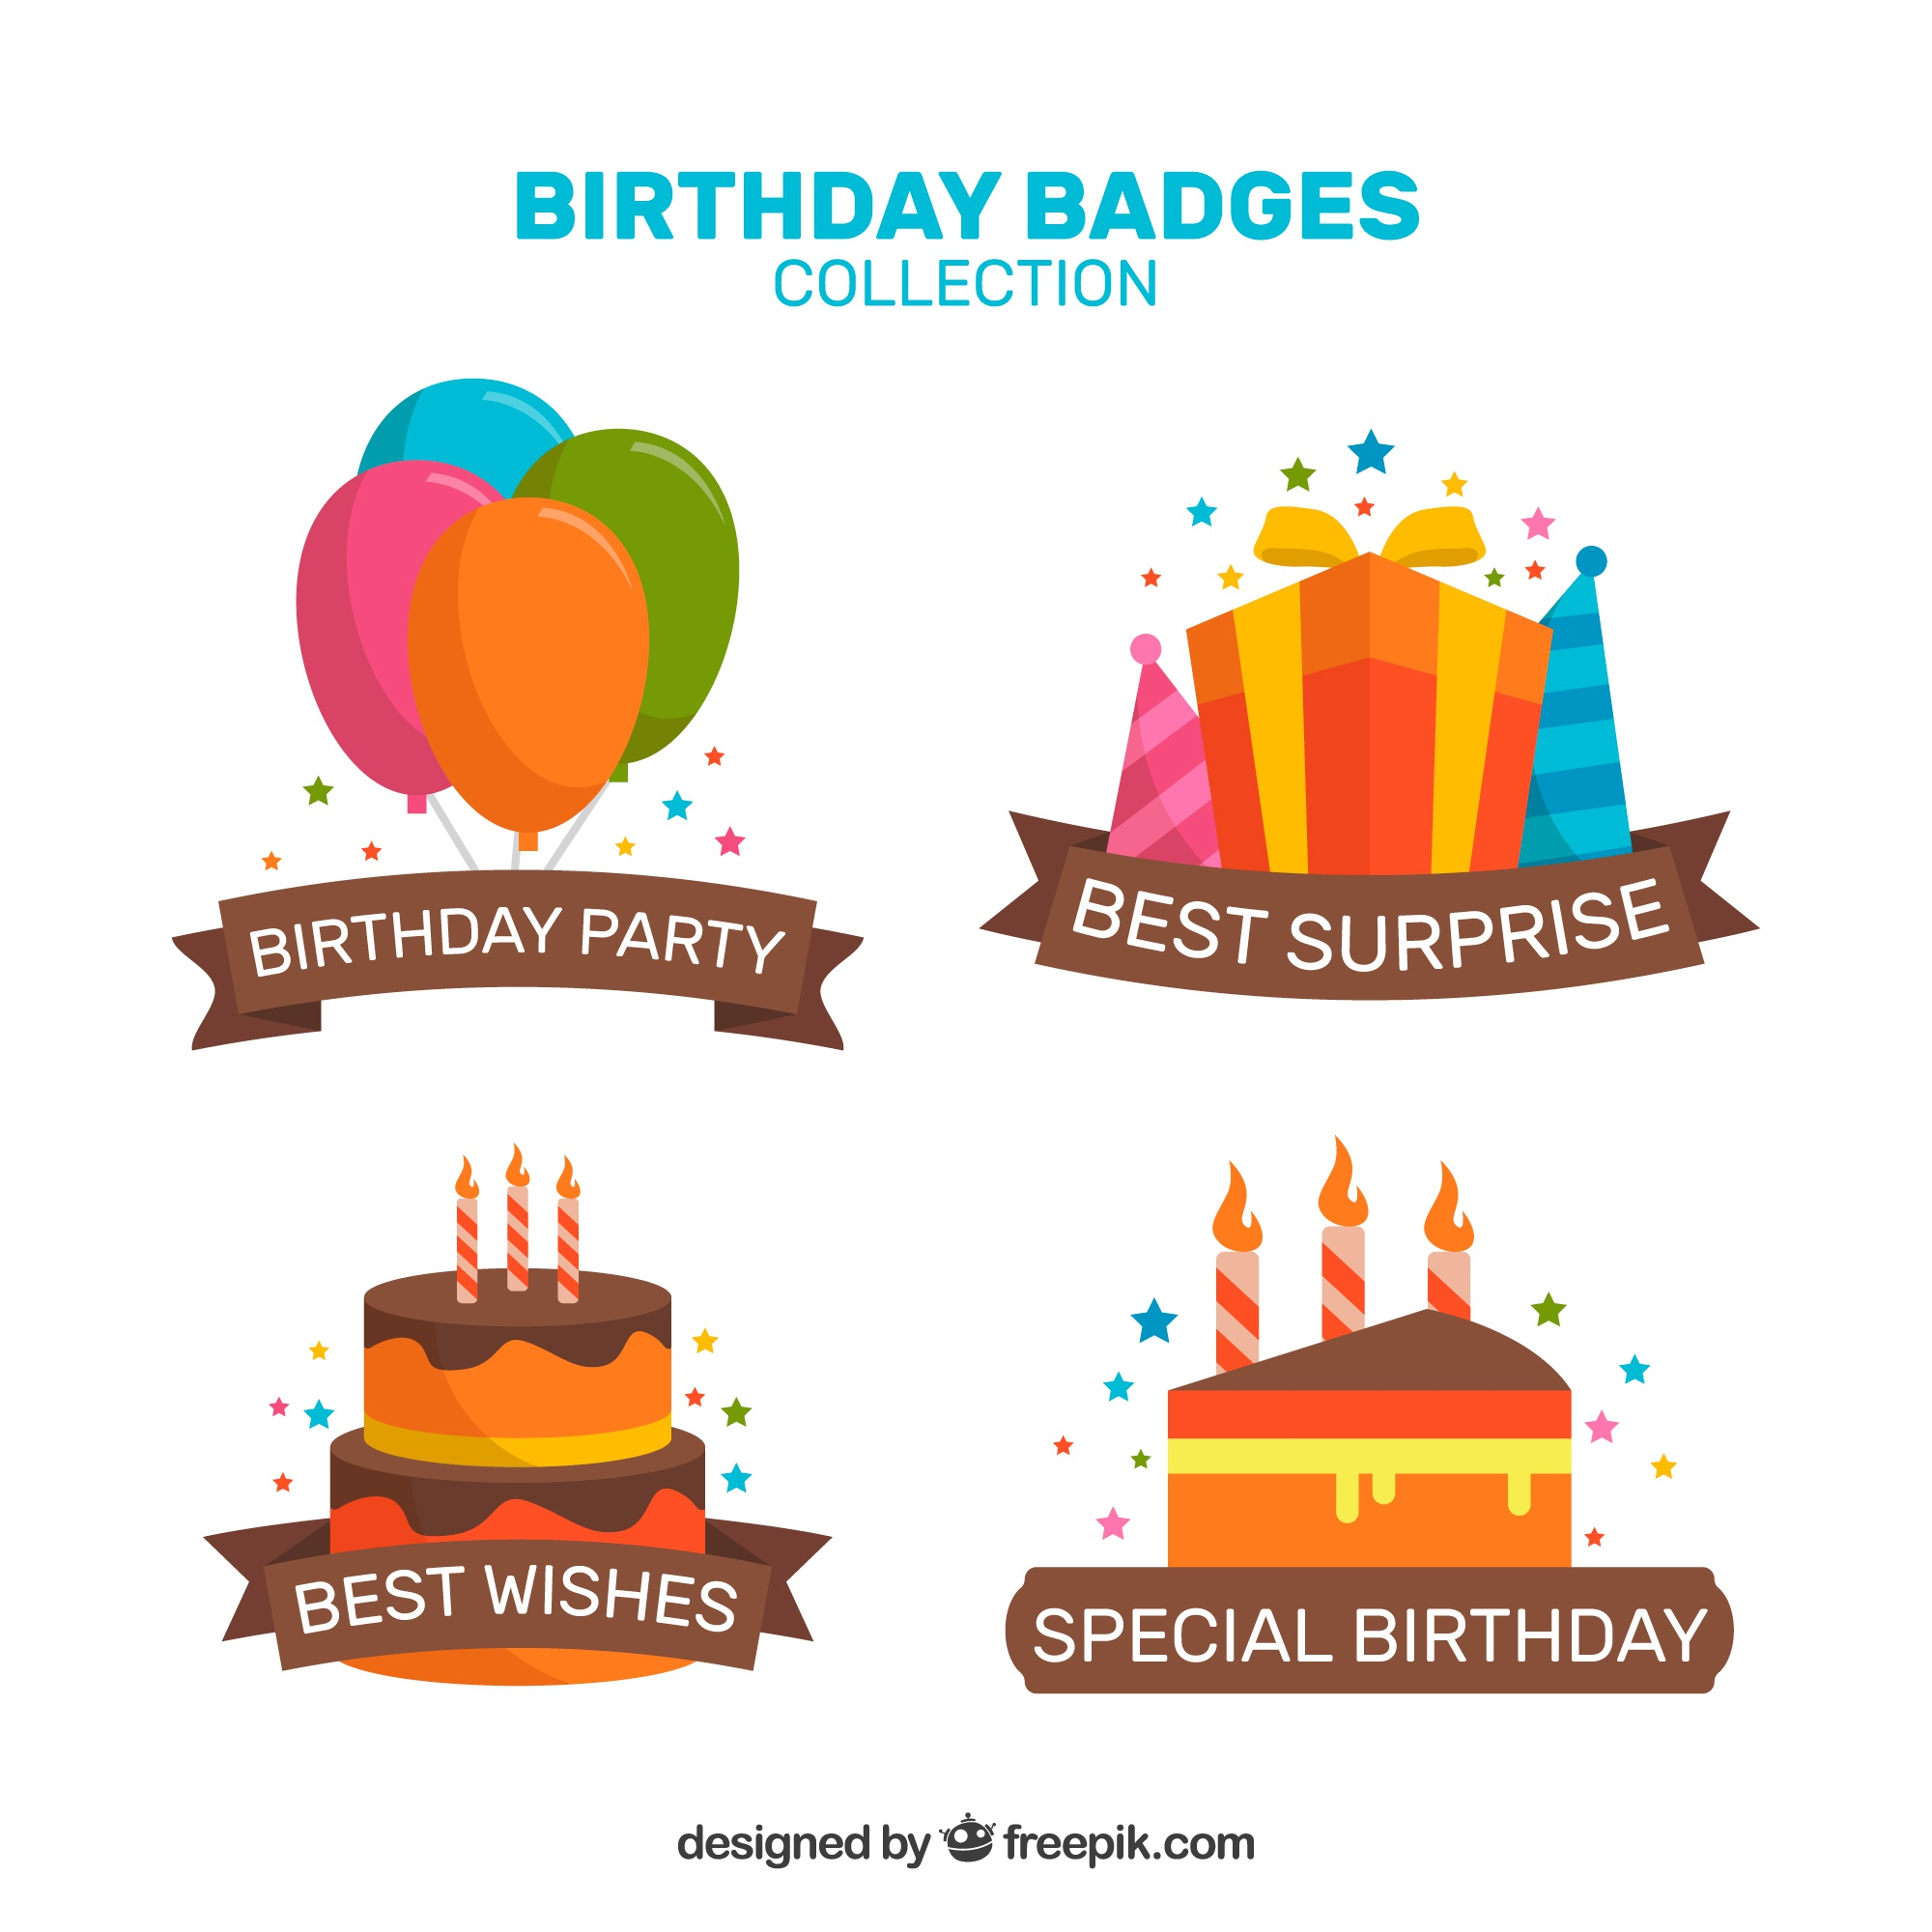 Special birthday badges collection